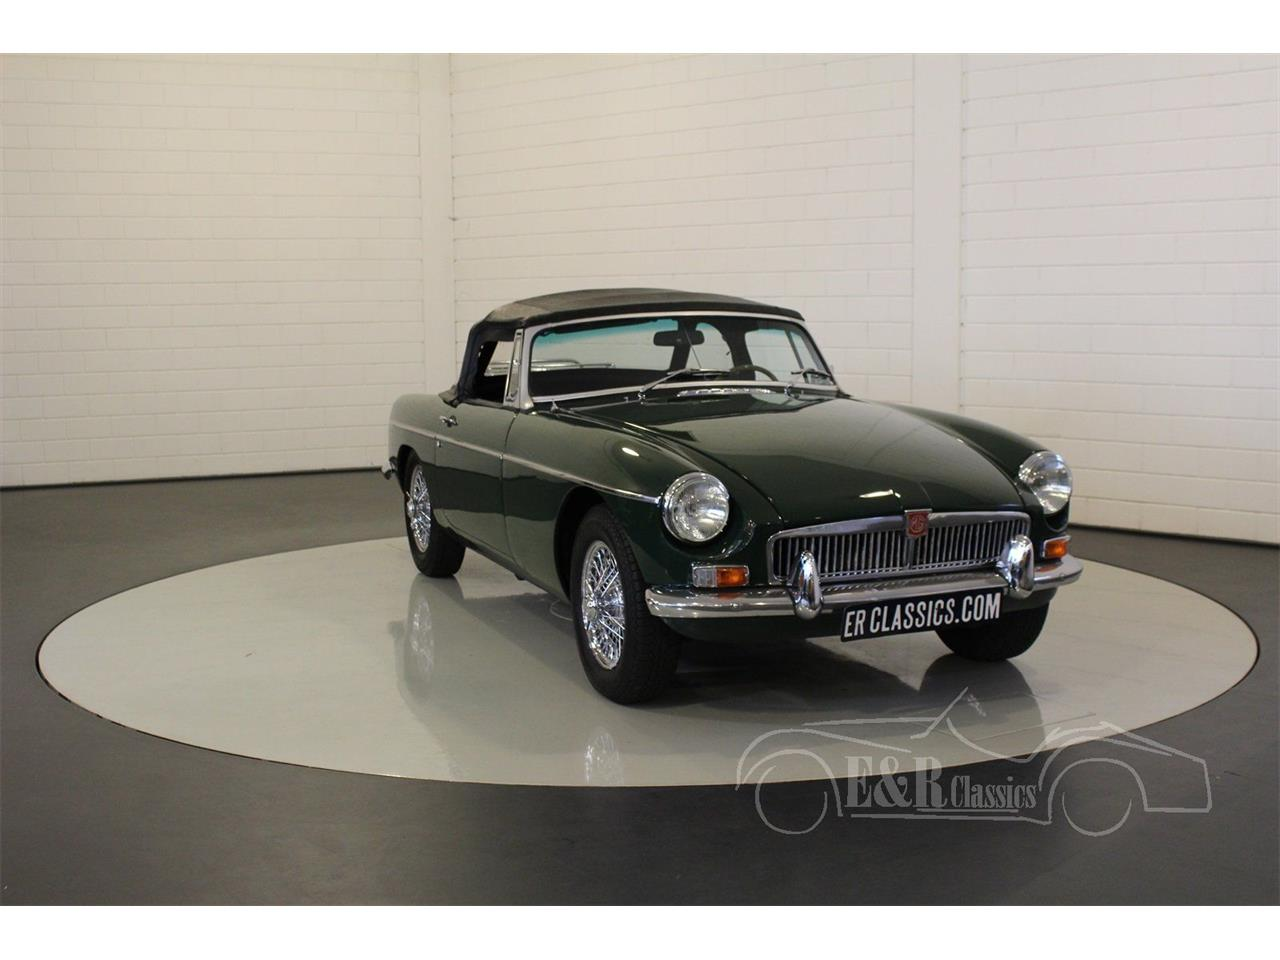 Large Picture of '64 MG MGB located in Waalwijk noord brabant - Q178